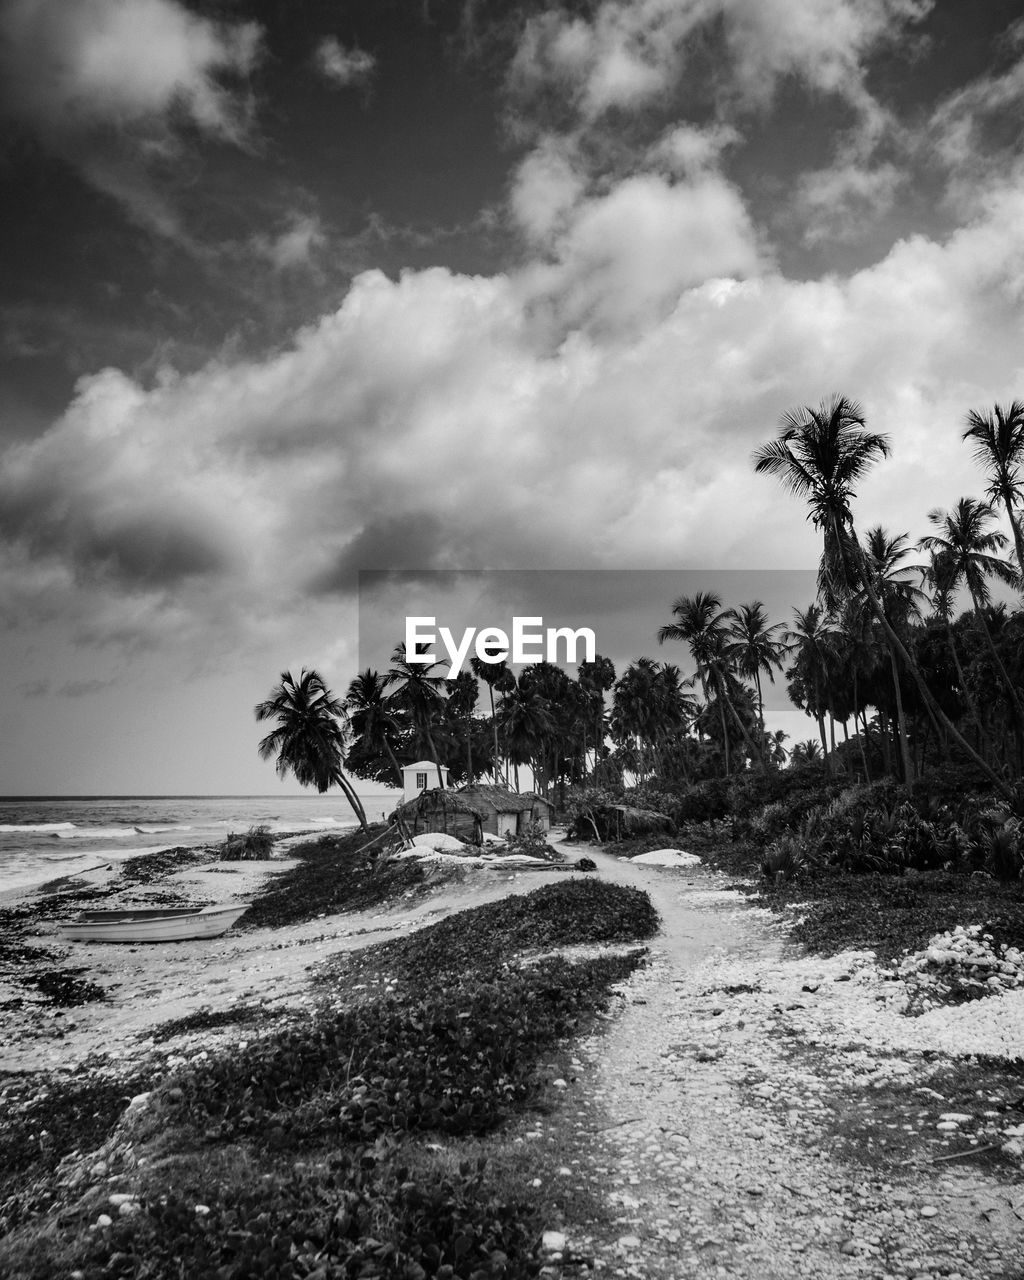 sky, cloud - sky, tree, plant, beauty in nature, land, tropical climate, palm tree, scenics - nature, nature, sea, water, tranquil scene, tranquility, beach, day, no people, outdoors, horizon, coconut palm tree